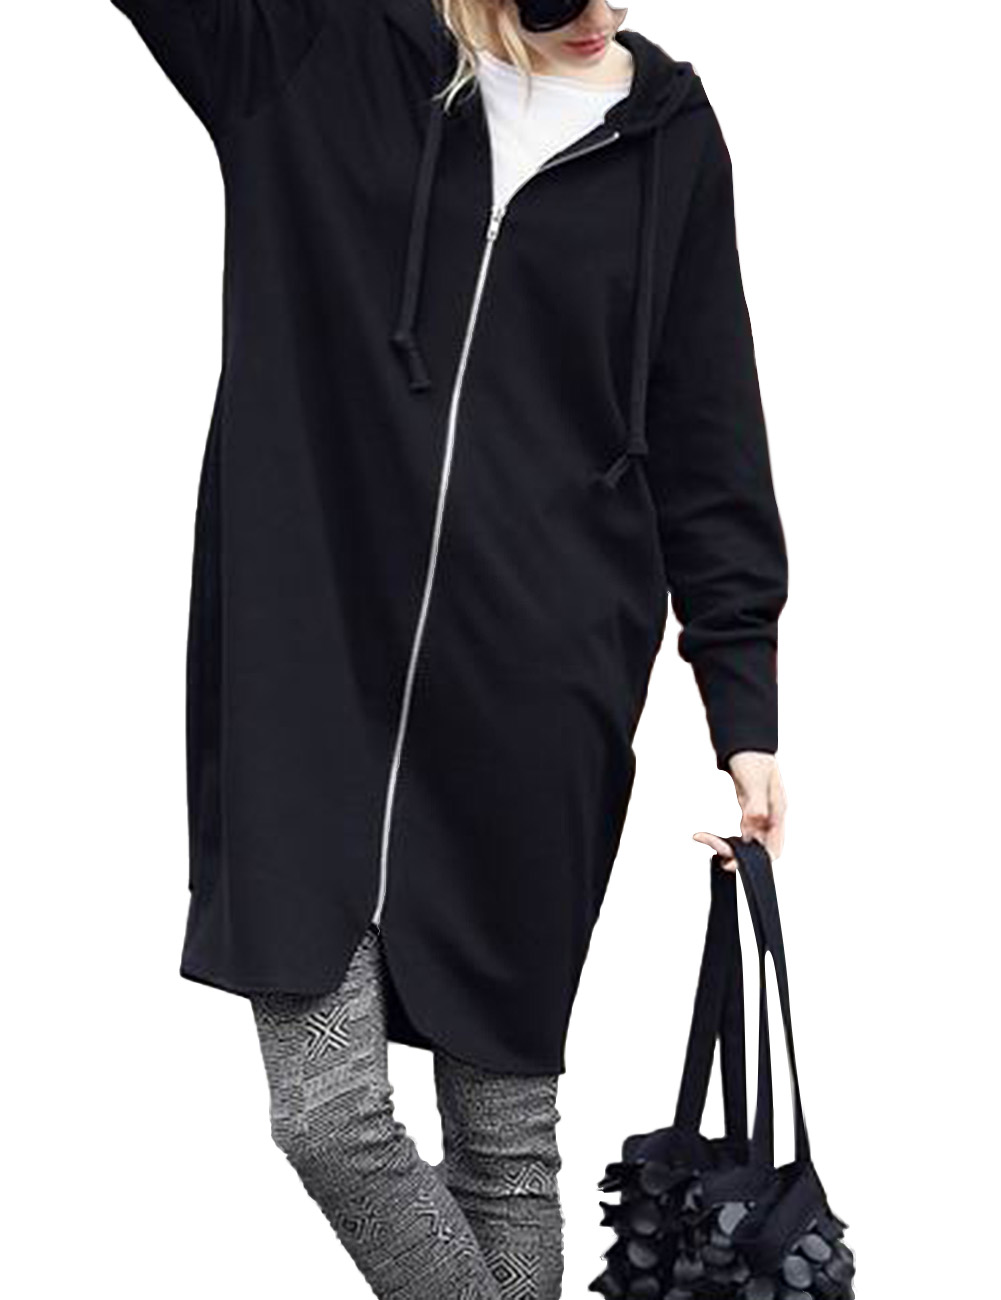 Women's Zip-Front Long Hoodie Jacket with Pockets and Zipper